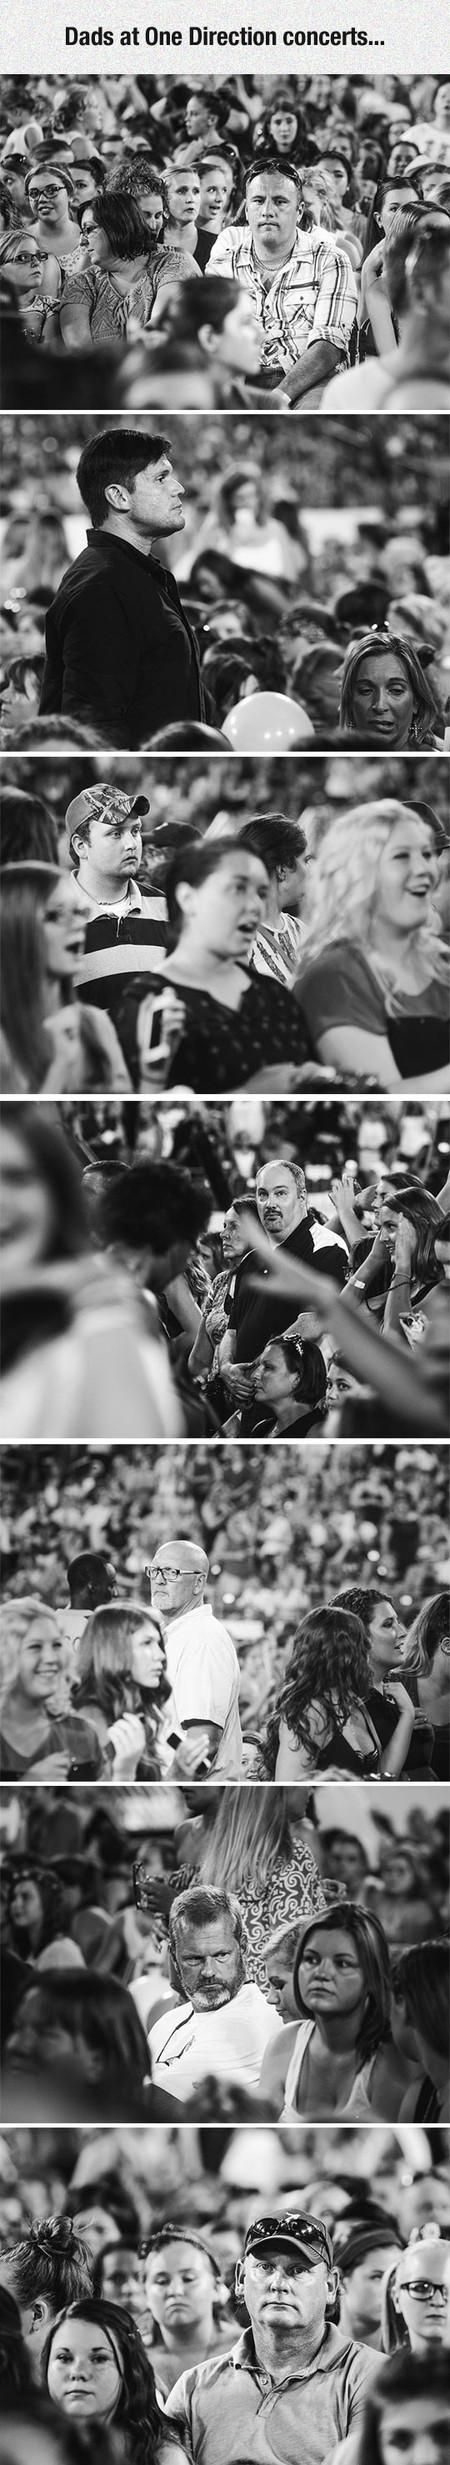 Dads At One Direction Concerts...this lifts me up when the world brings me down